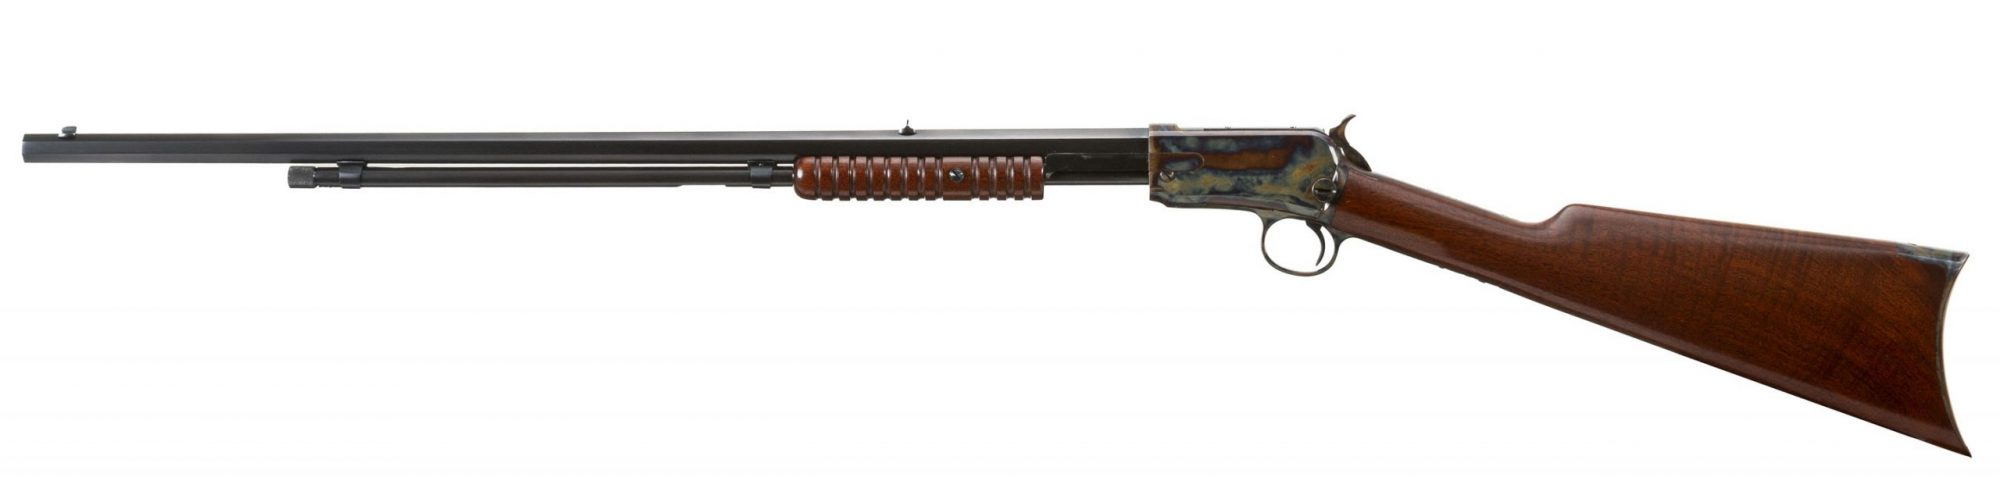 Photo of a Winchester Model 1890 from 1895, restored by Turnbull Restoration in 2007